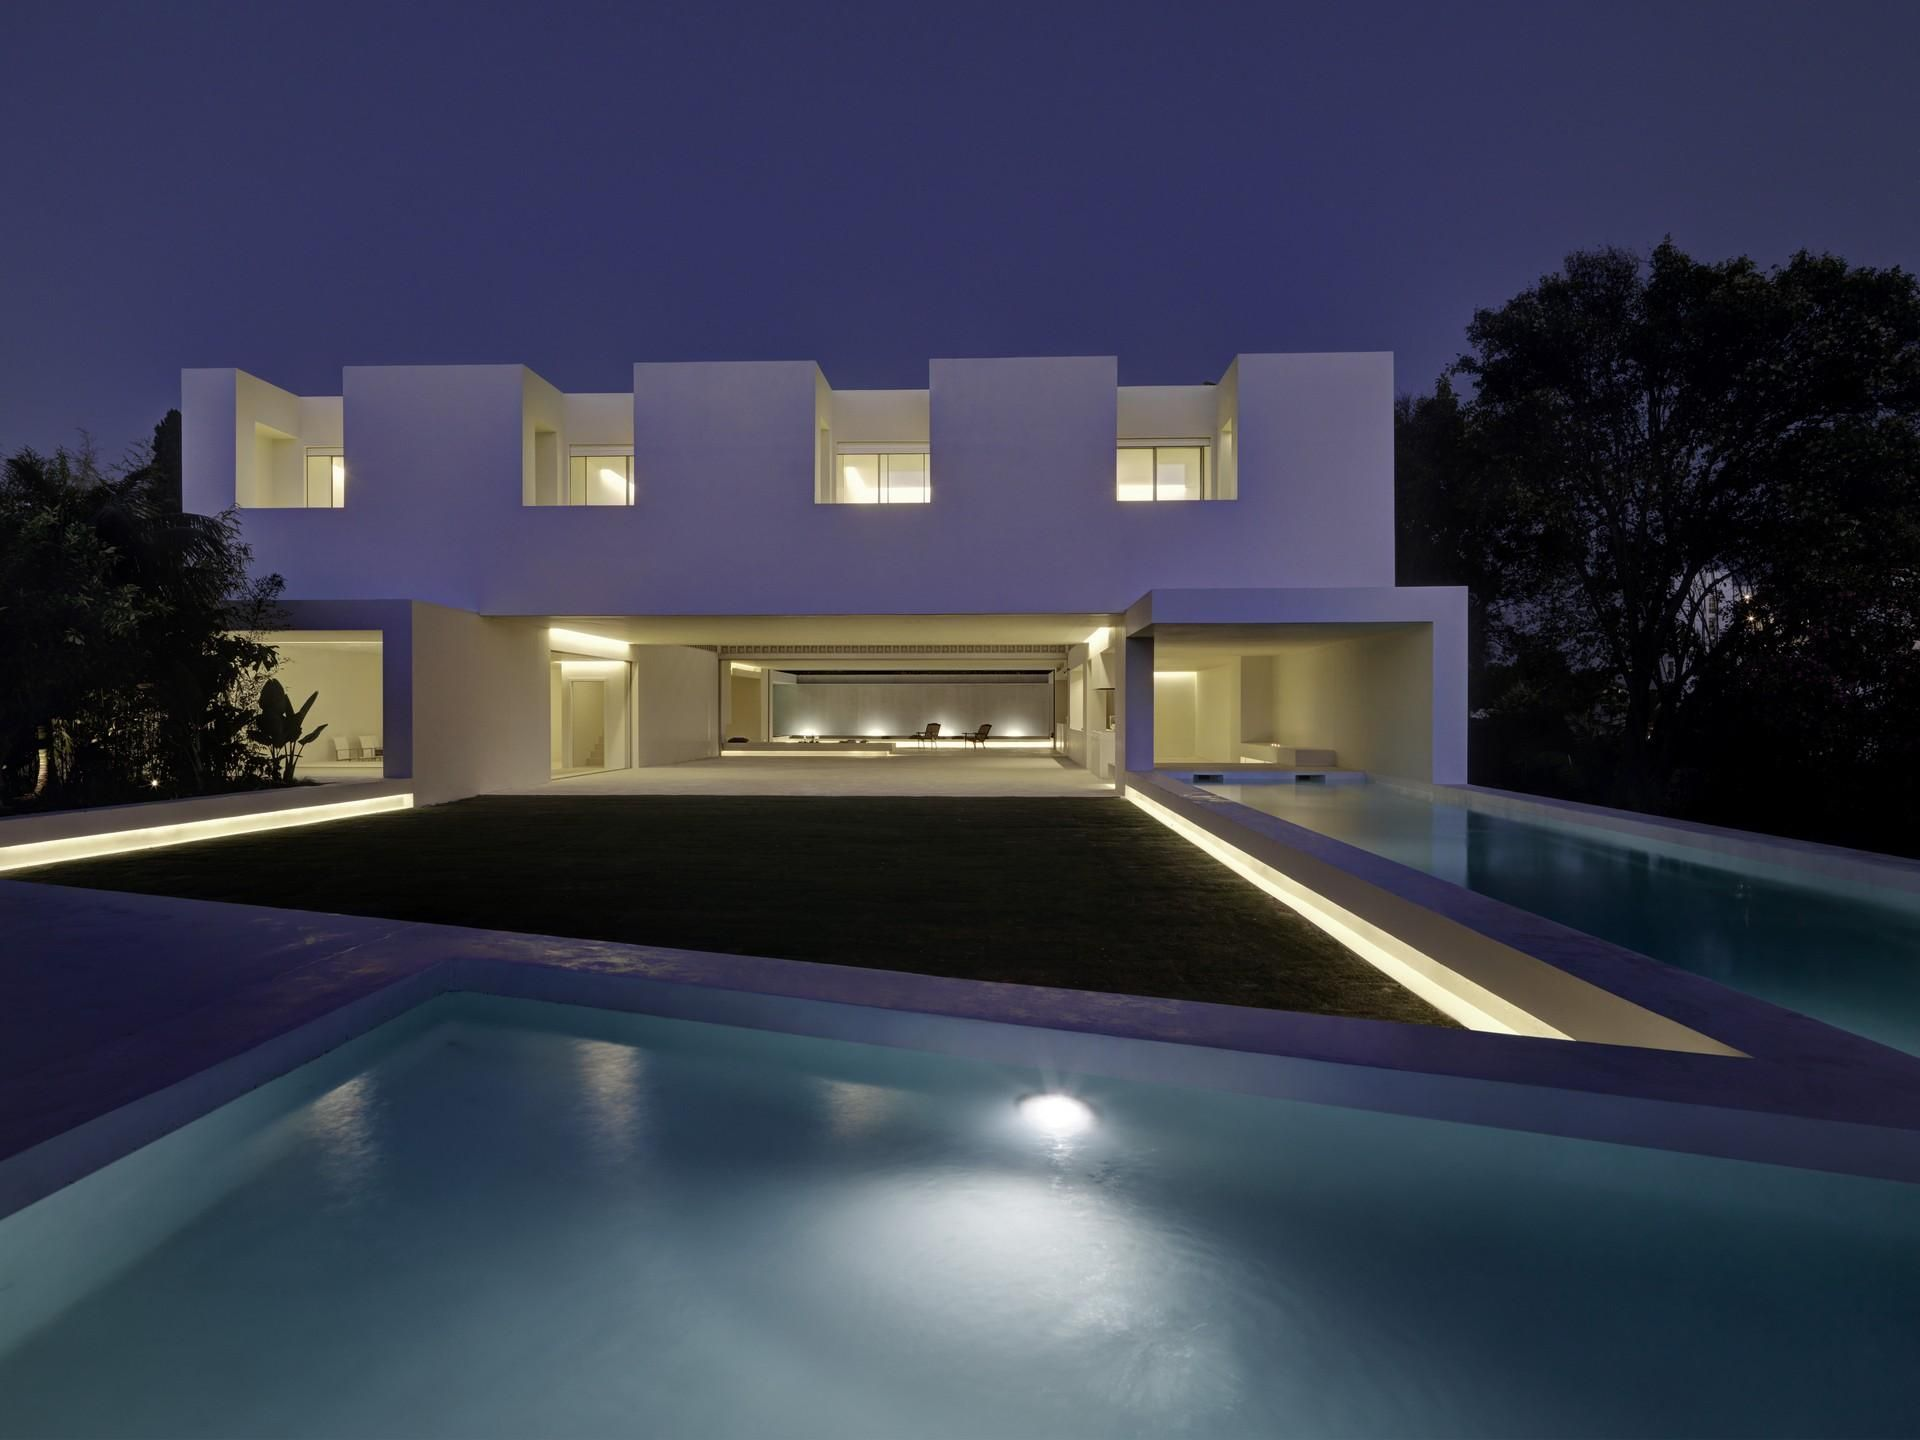 Los limoneros - house over a garden by gus wüstemann architects Marbella, Spain